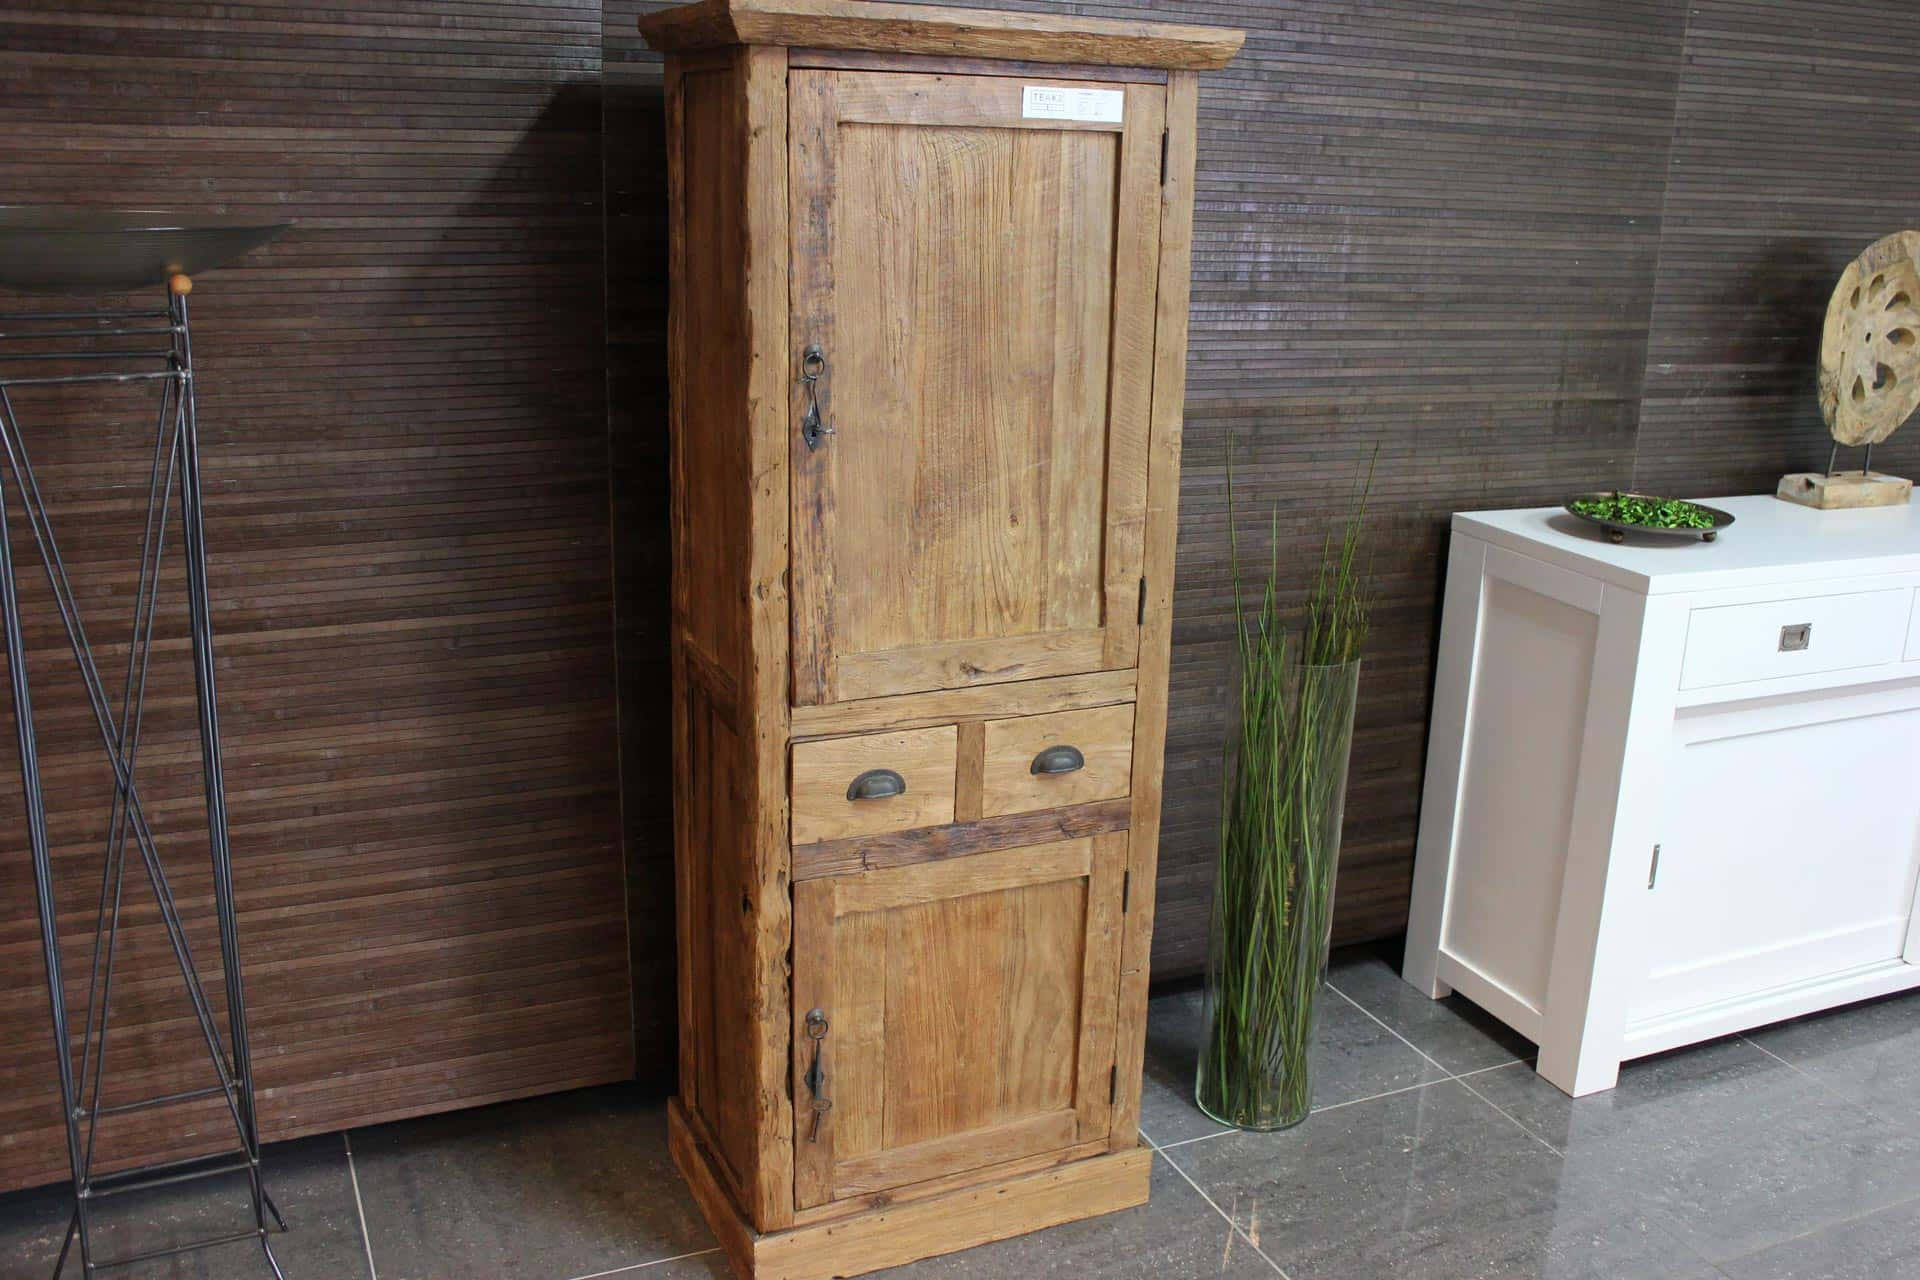 Cuci Remeh 60E Old | small teak wall cabinet from Indonesia. This small teak cupboard is made in exclusive old erosion teak. Teak furniture at TEAK2.